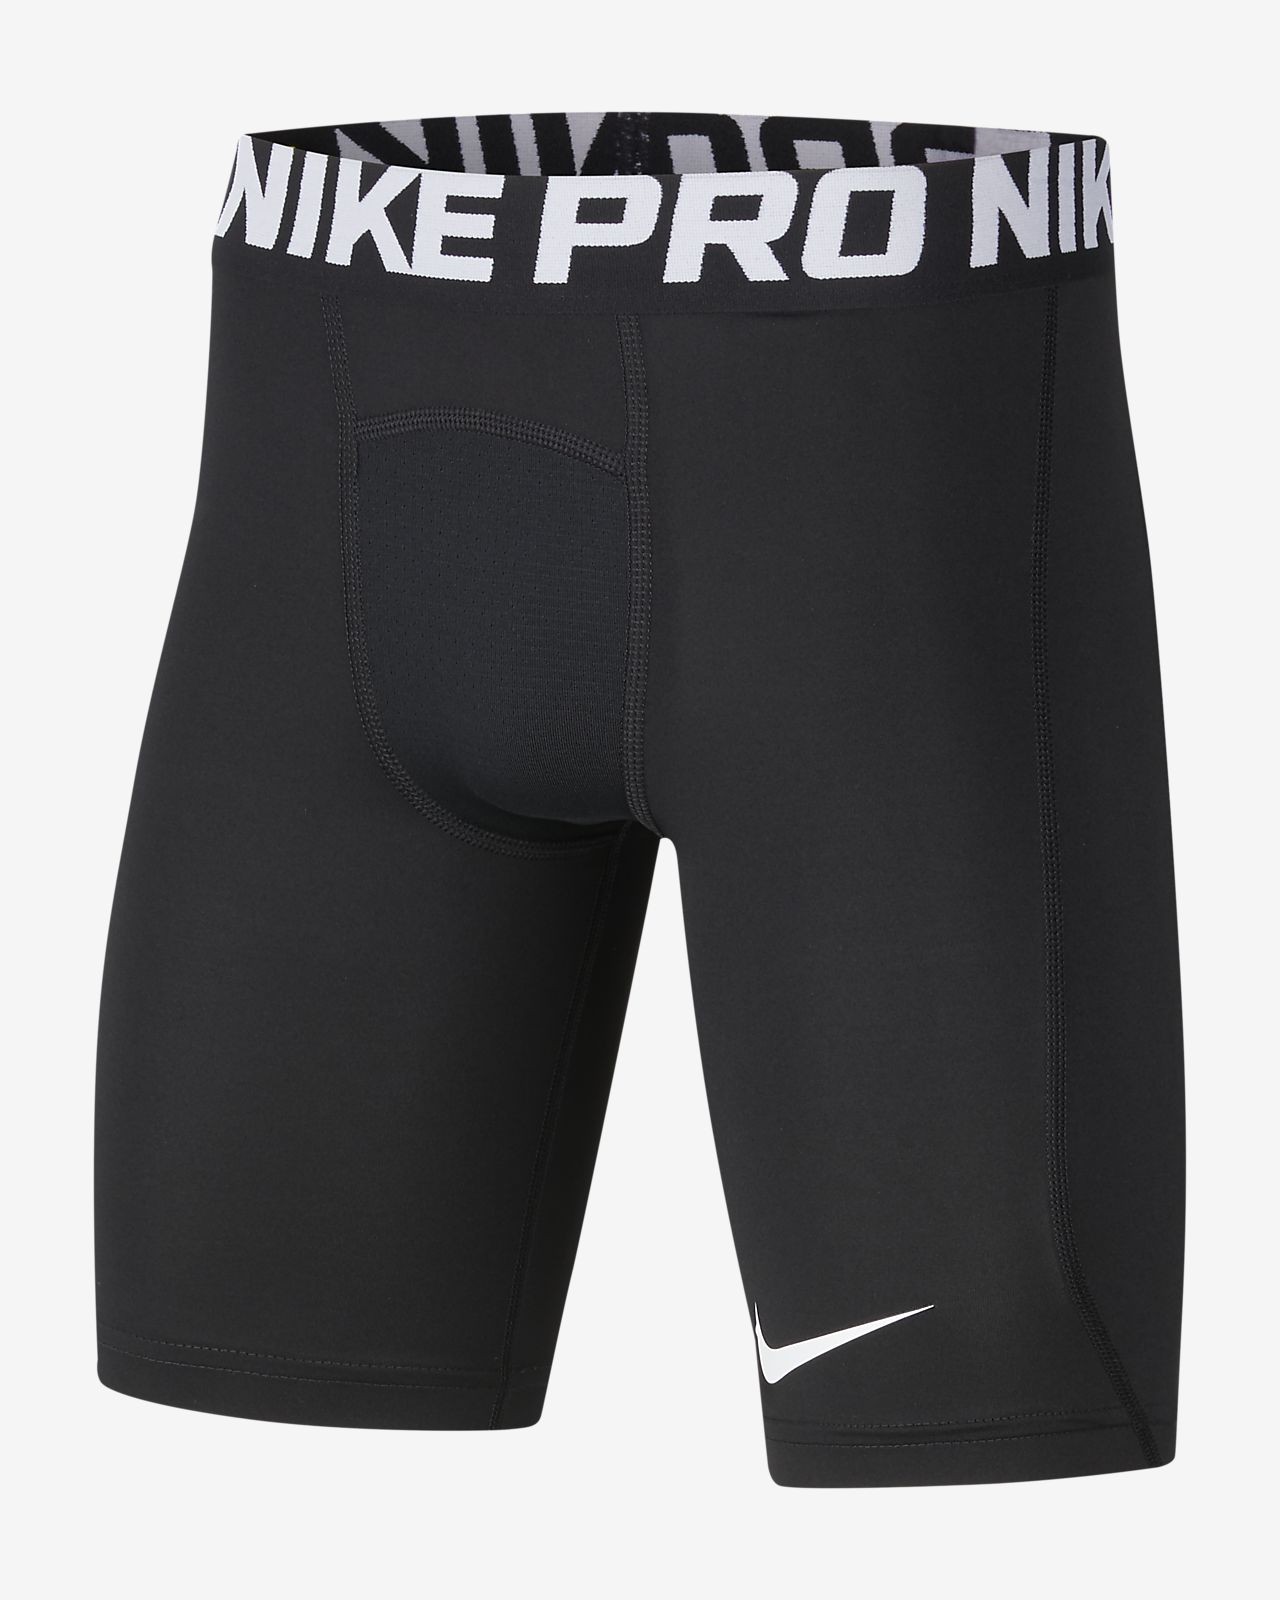 Nike Pro Older Kids' (Boys') Shorts